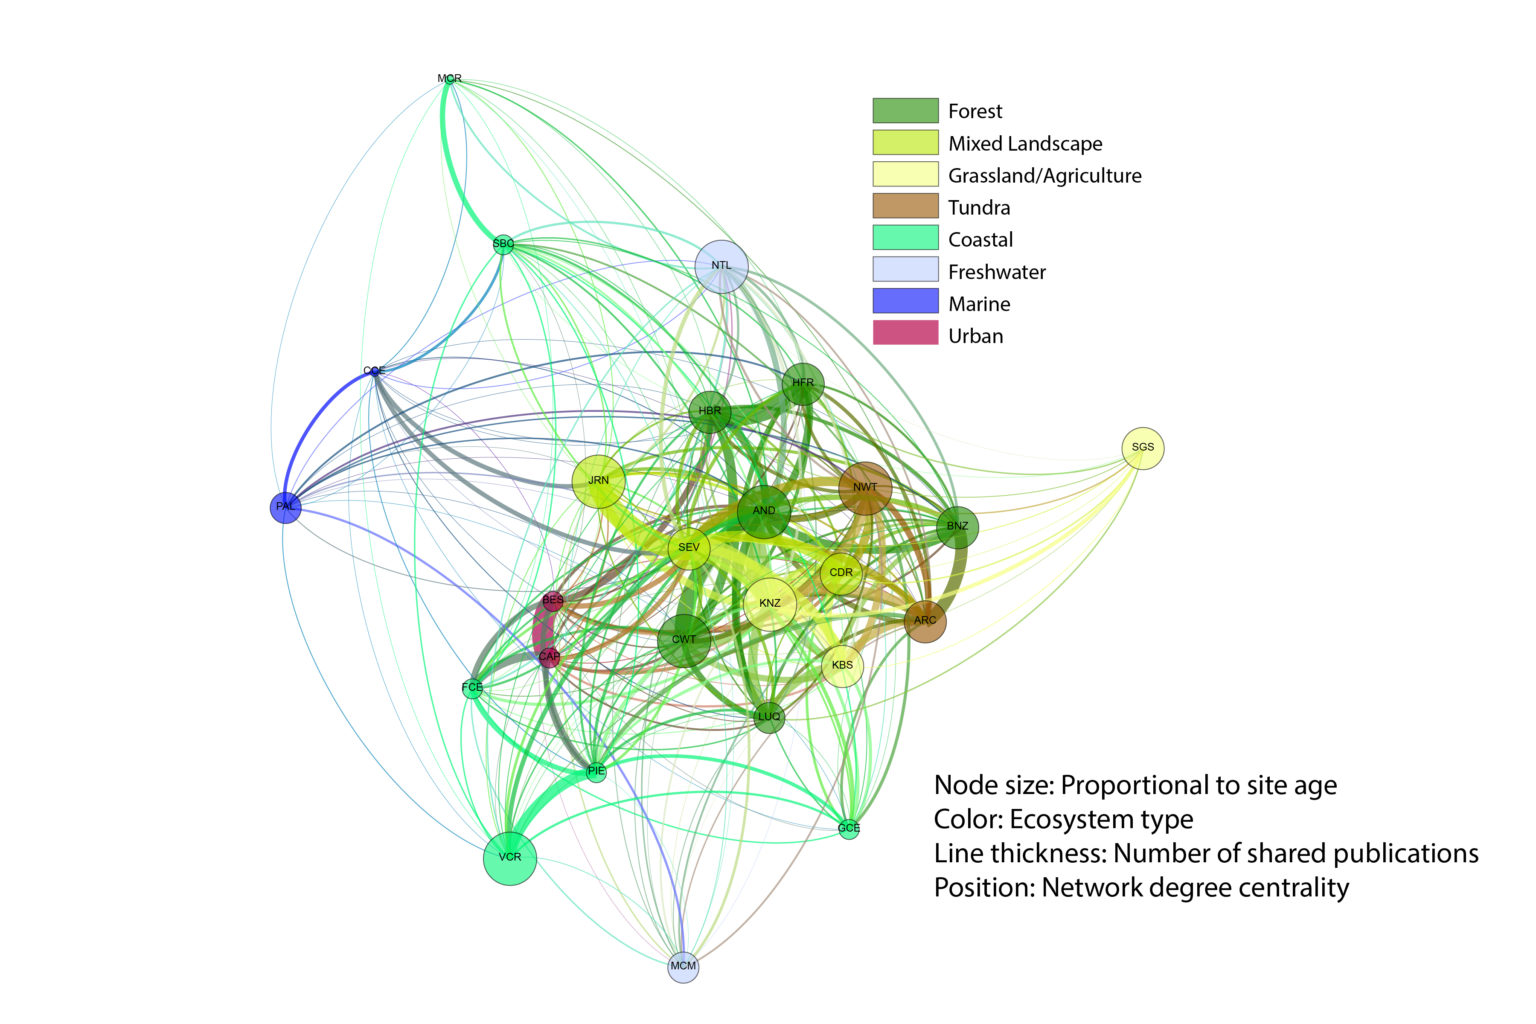 network analysis, based on site age, ecosystem type, number of shared publications and network centrality